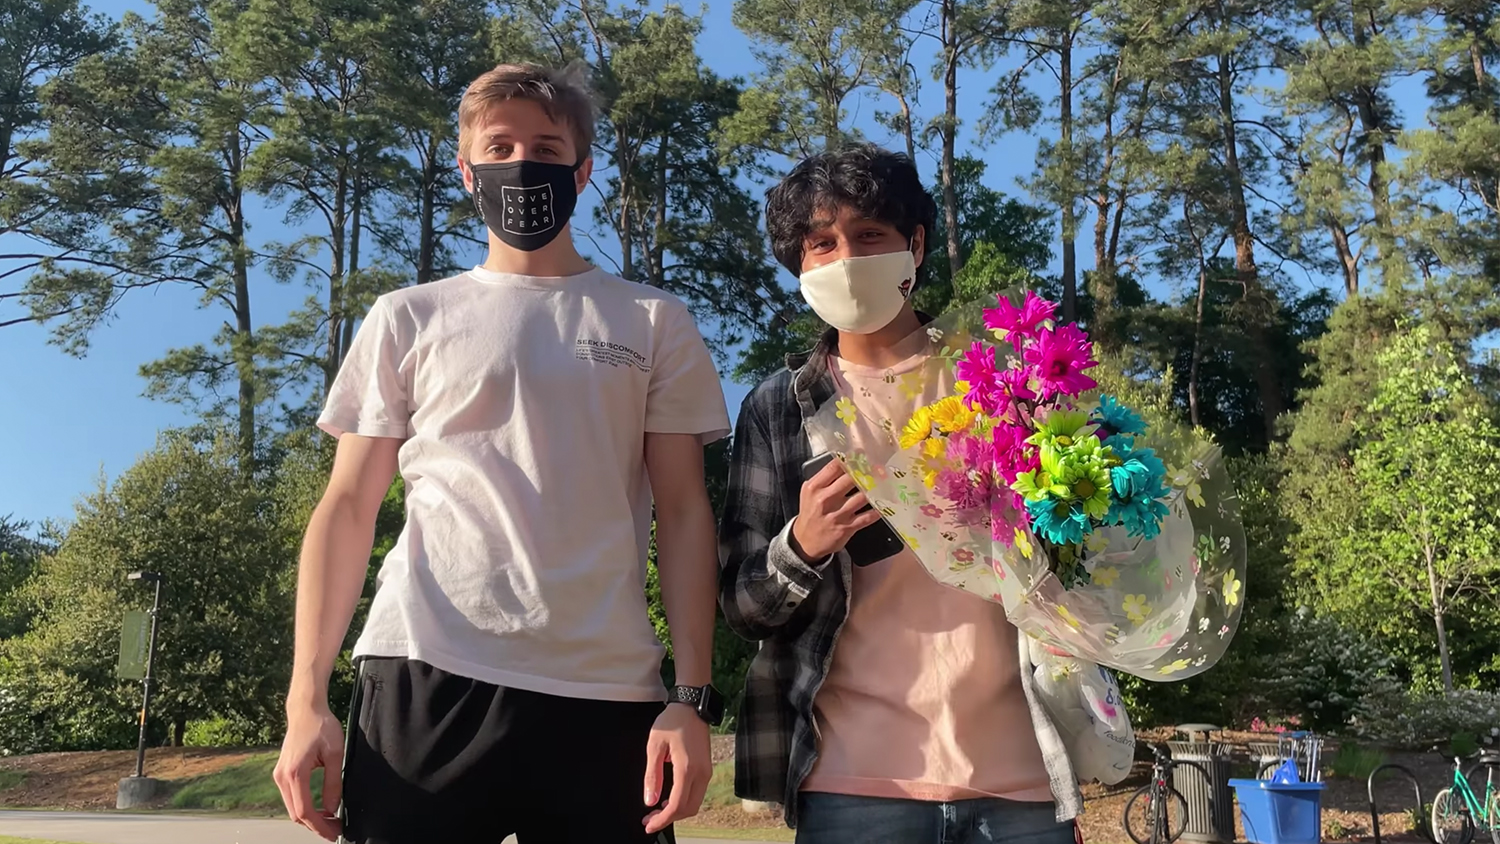 Sean Deardorff and Tejas Kakade wearing masks, holding flowers in an outdoor setting